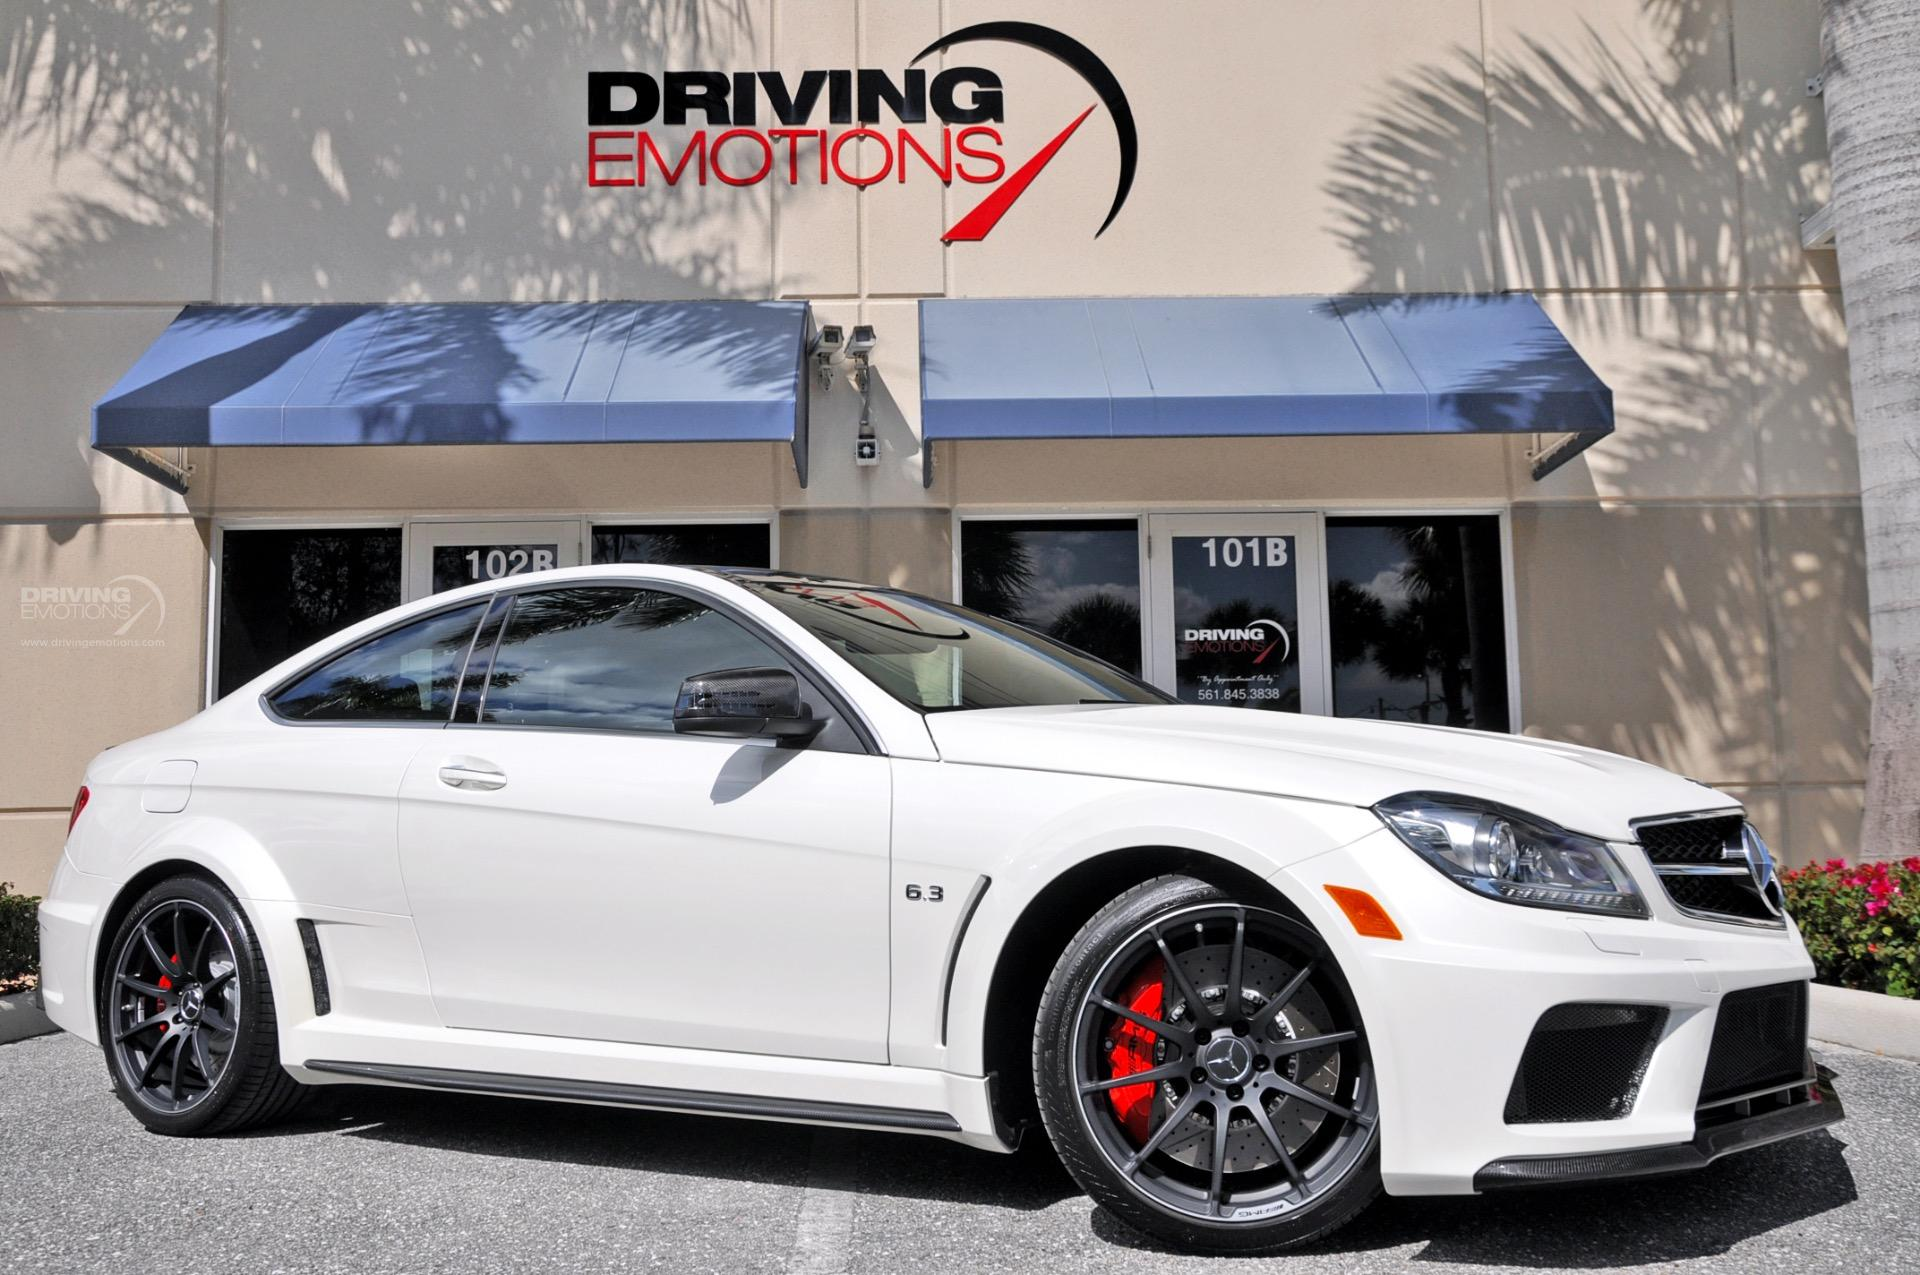 2013 mercedes benz c63 amg black series c63 amg black series stock 5862 for sale near lake. Black Bedroom Furniture Sets. Home Design Ideas